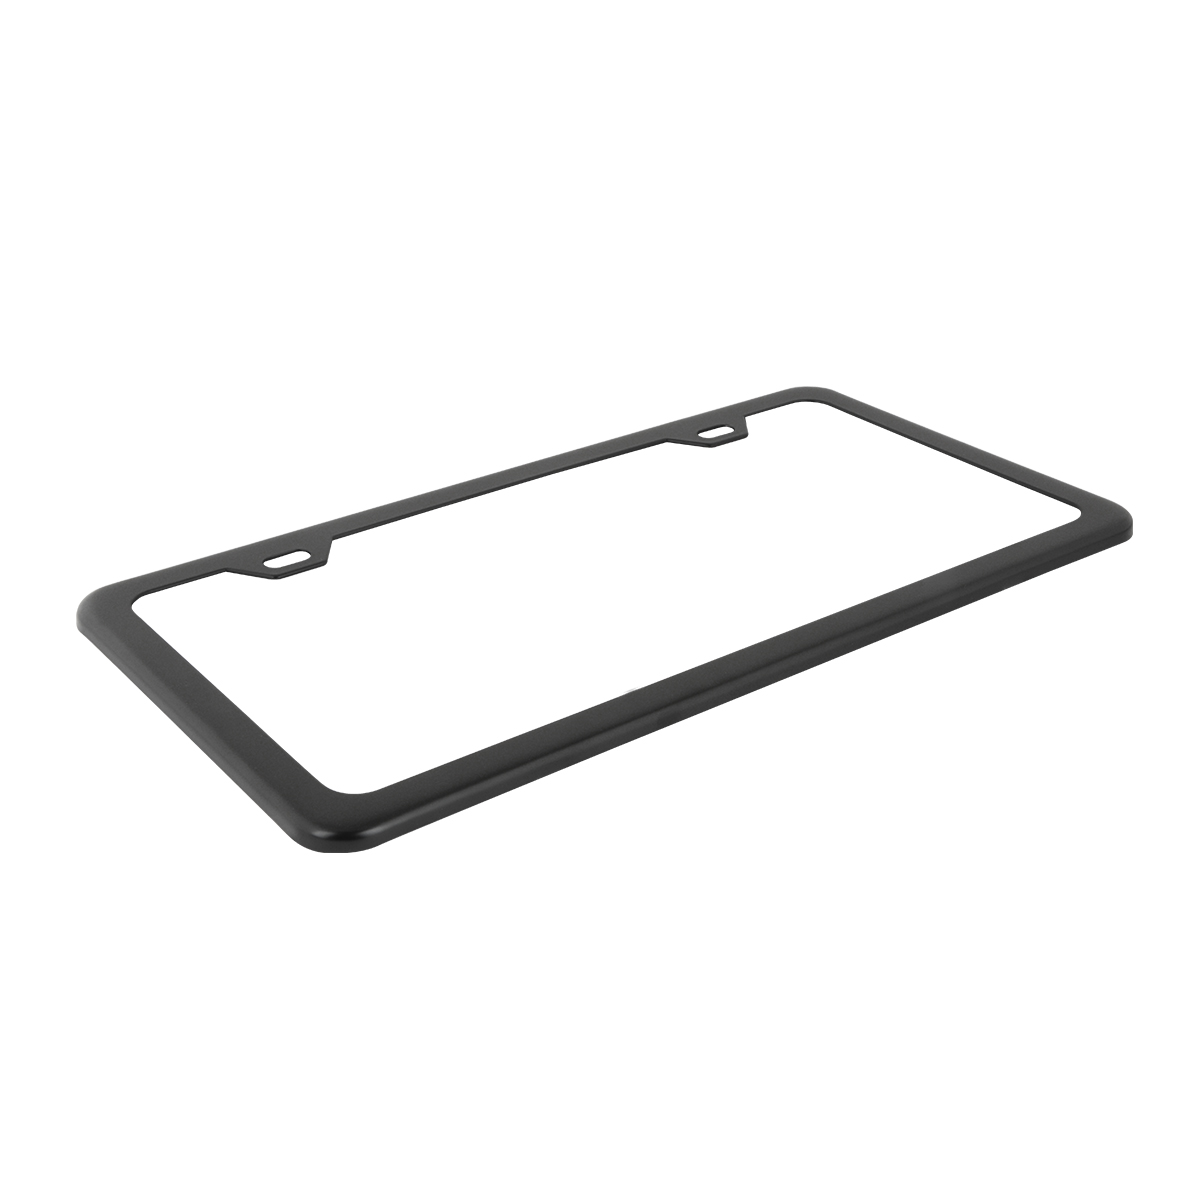 60402 Plain Matte Black 2 Hole License Plate Frame - Top View